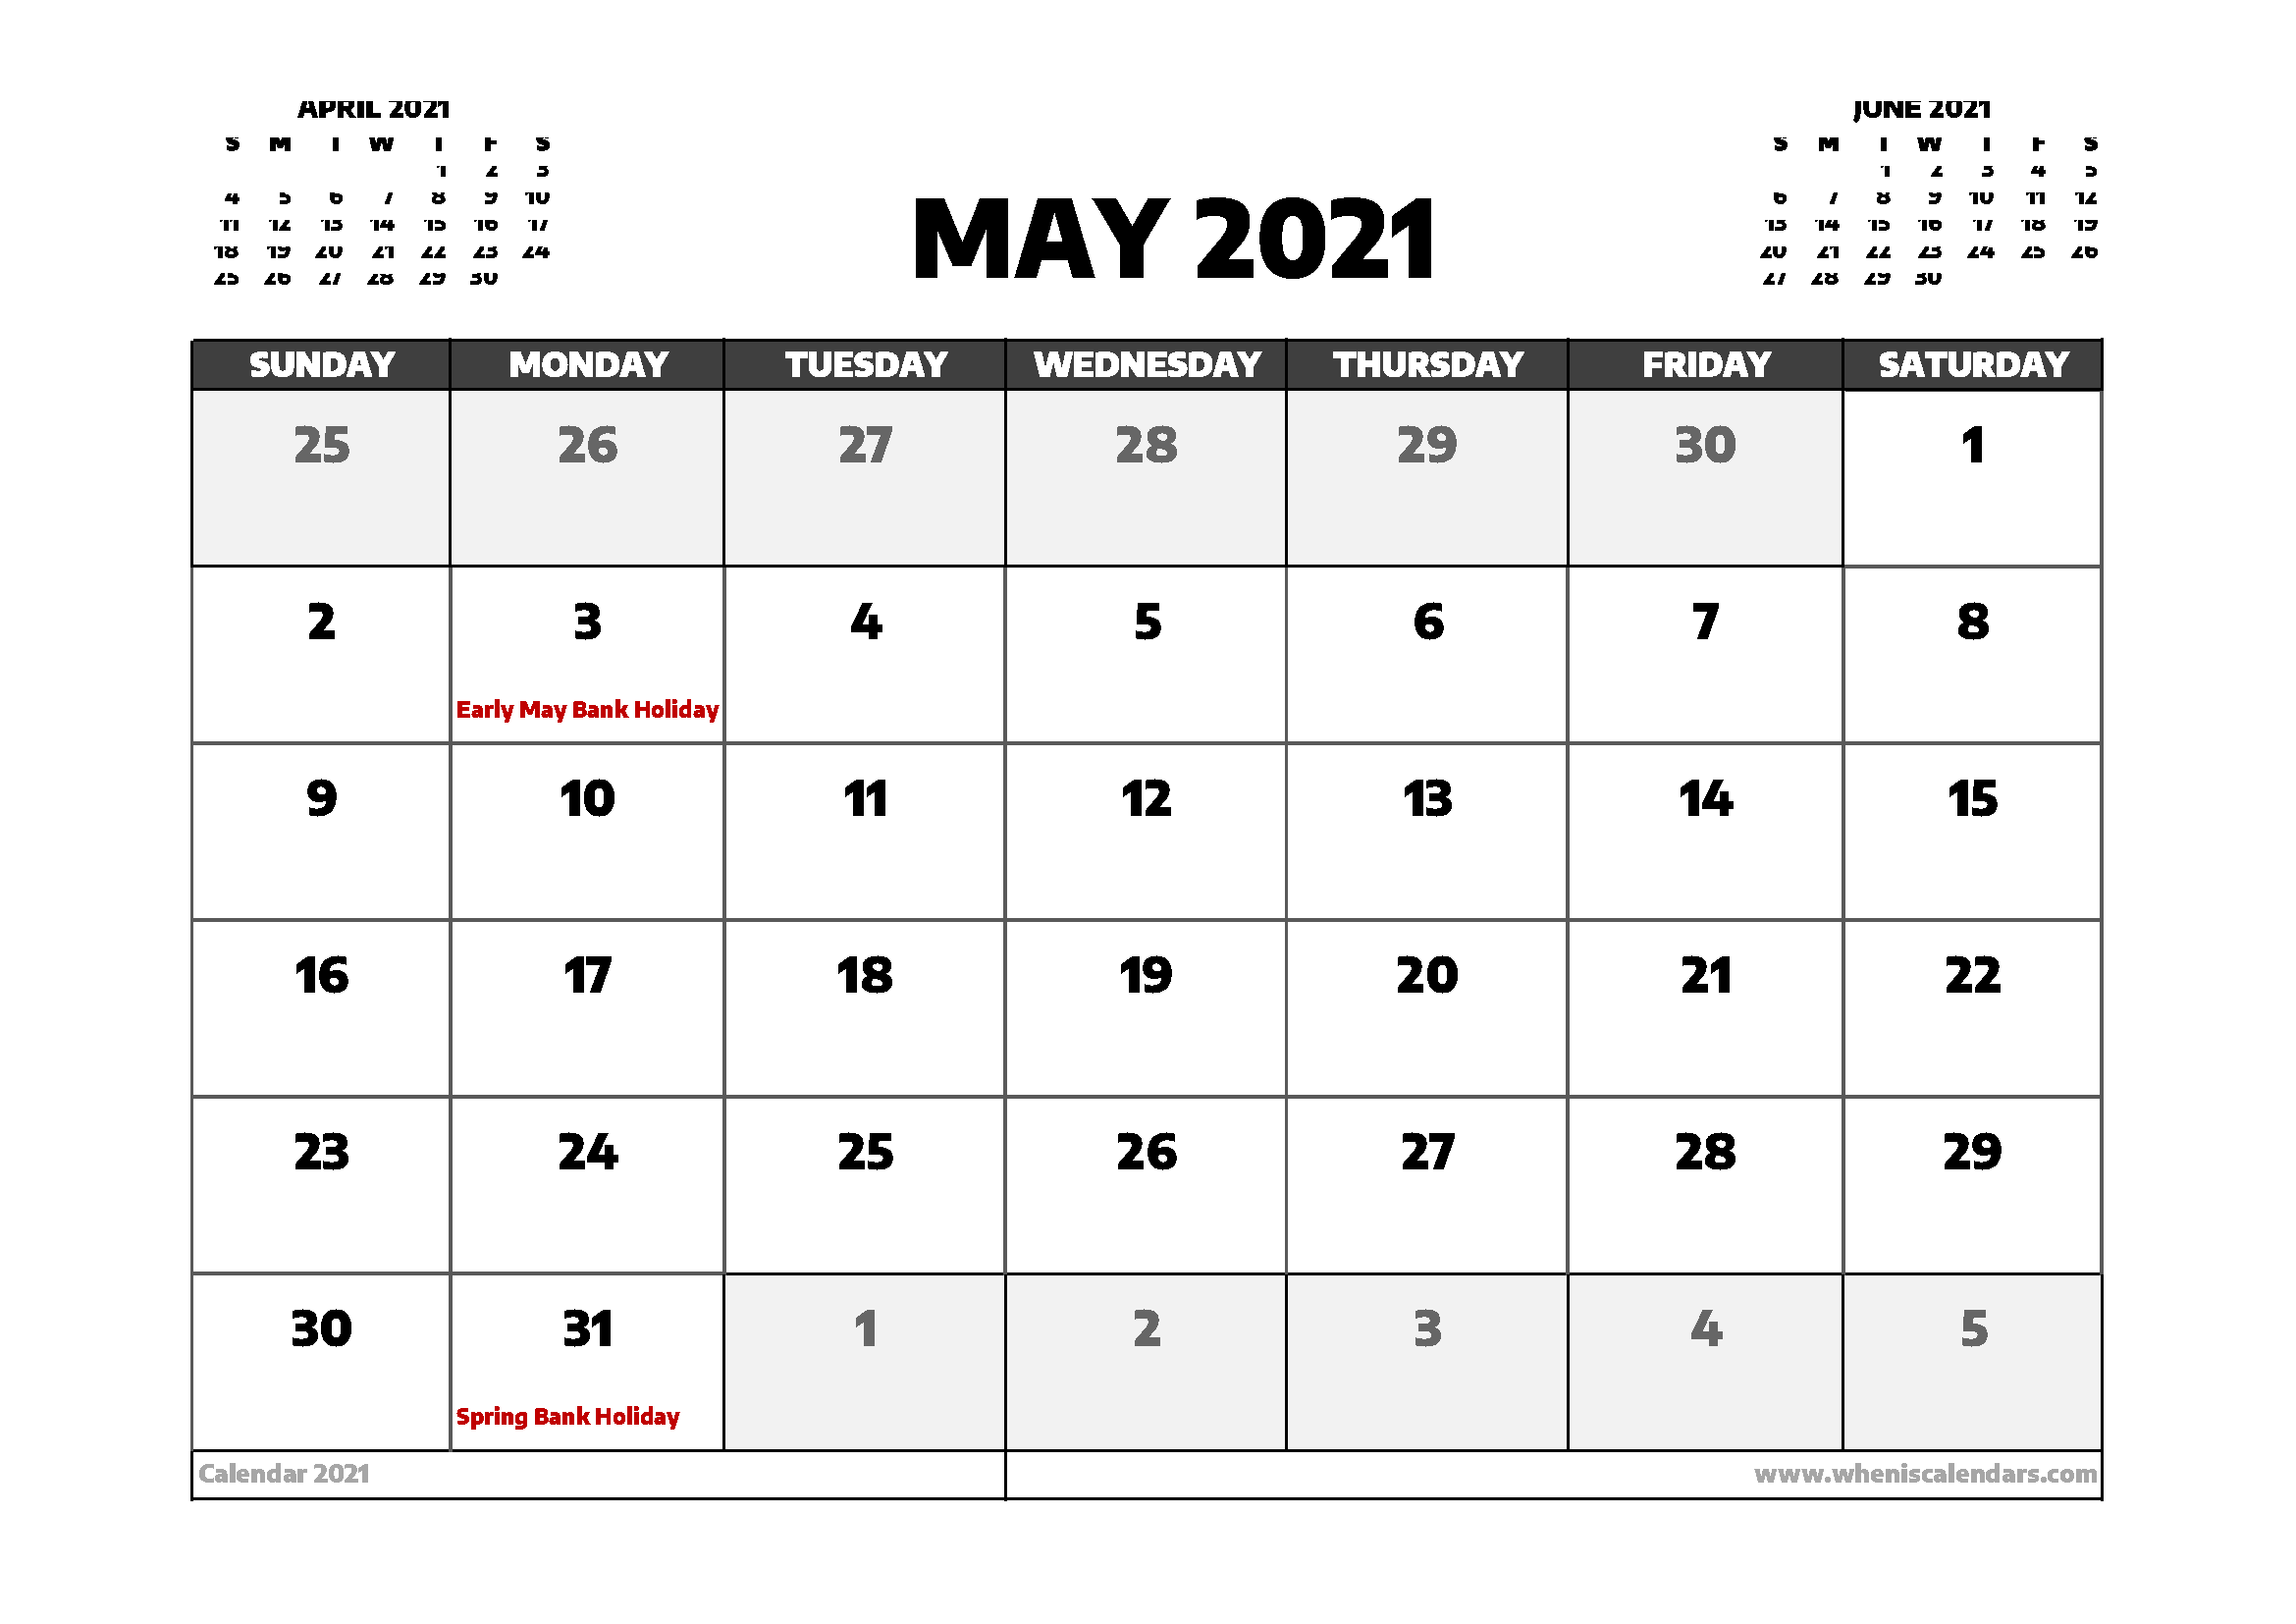 May Calendar 2021 Uk - April 2021